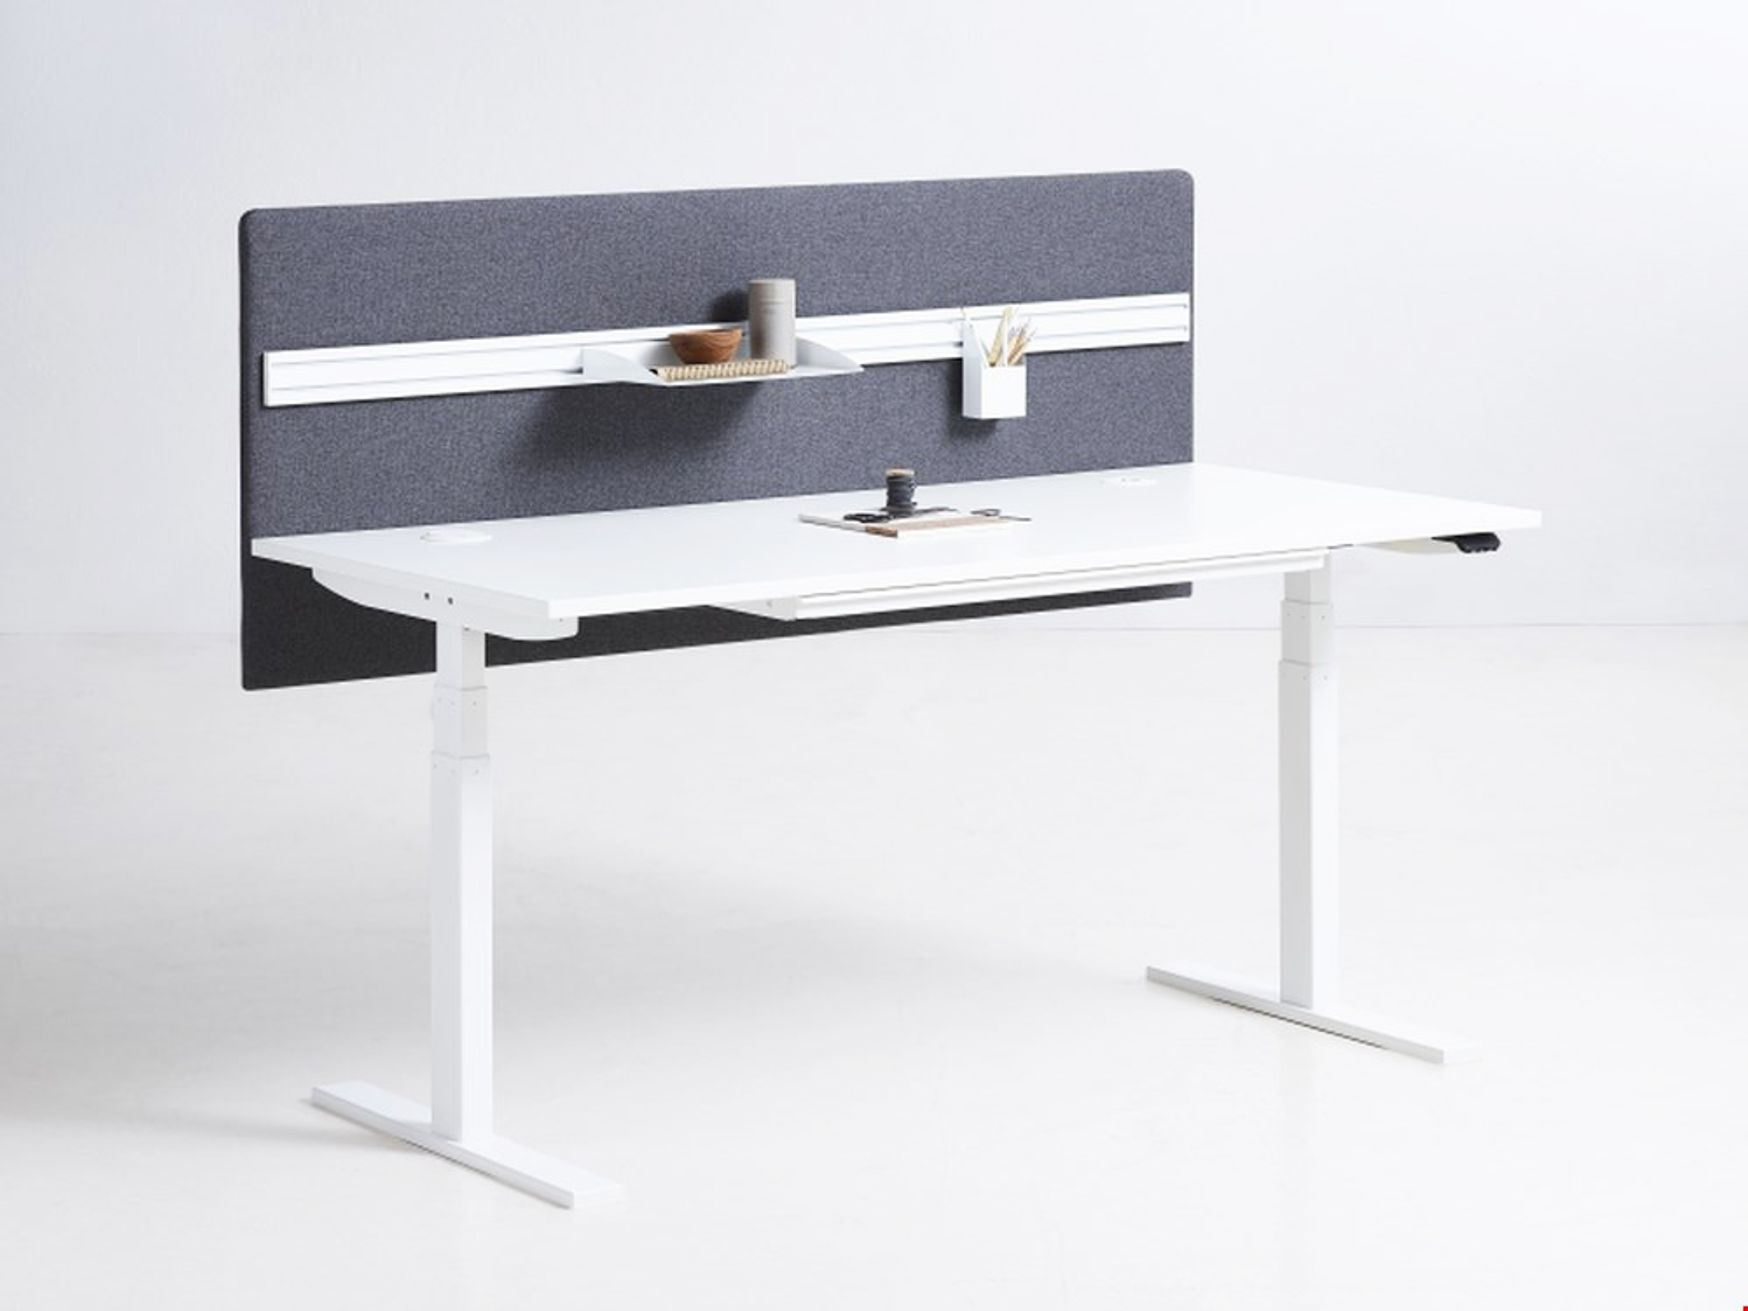 Limited Stock of Brand New Electric Sit Stand Desks with Market leading Linak Motors